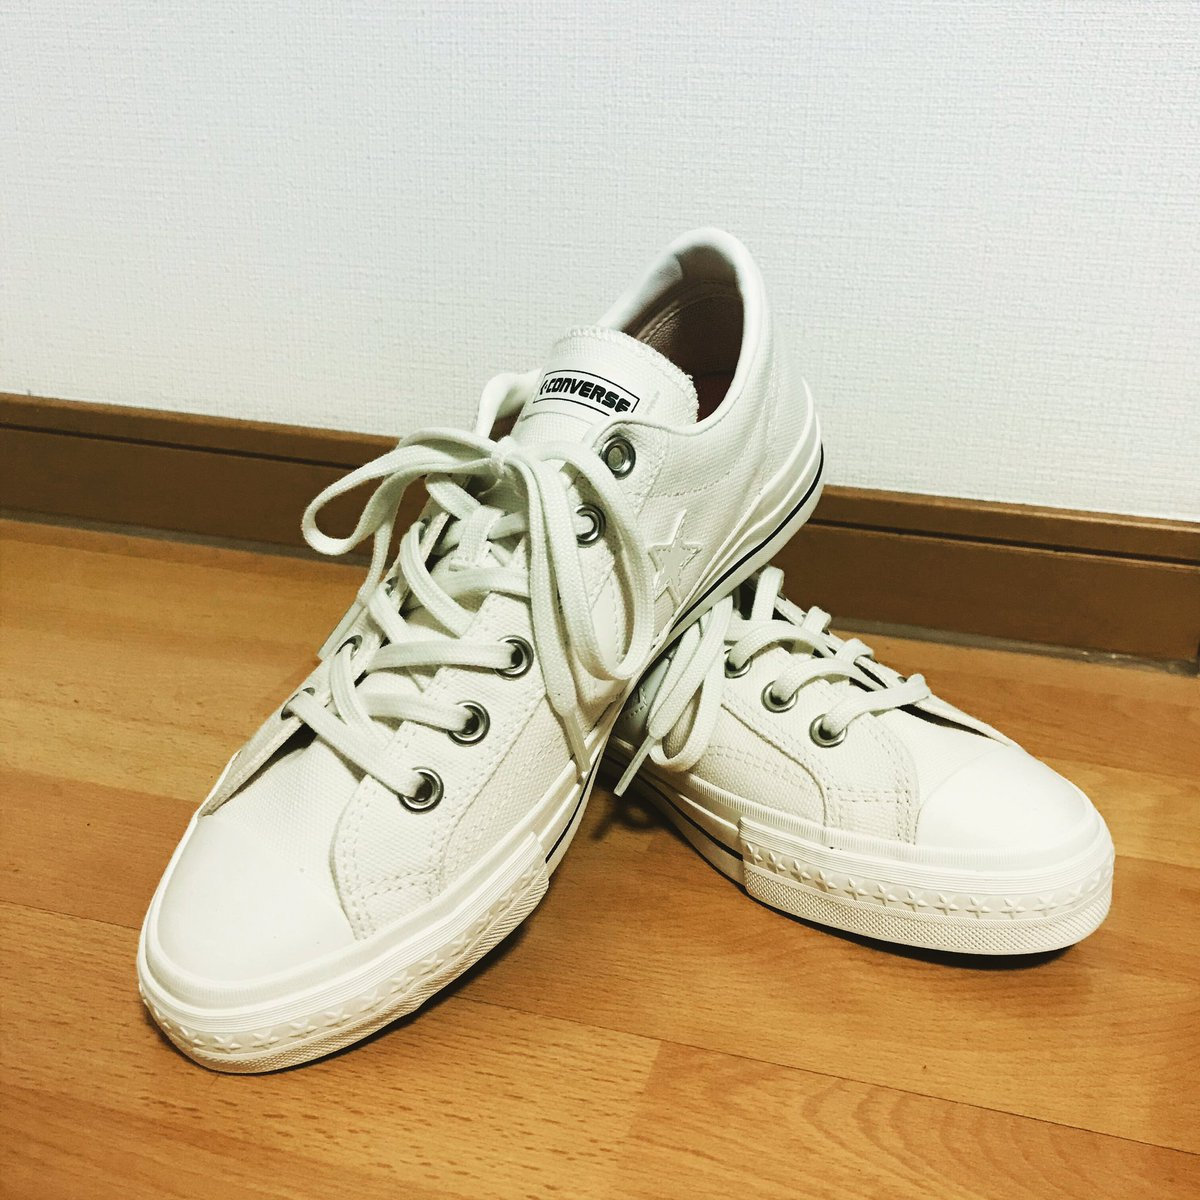 CONVERSE STAR COURT Ox Leather White 159802C Confort Herre